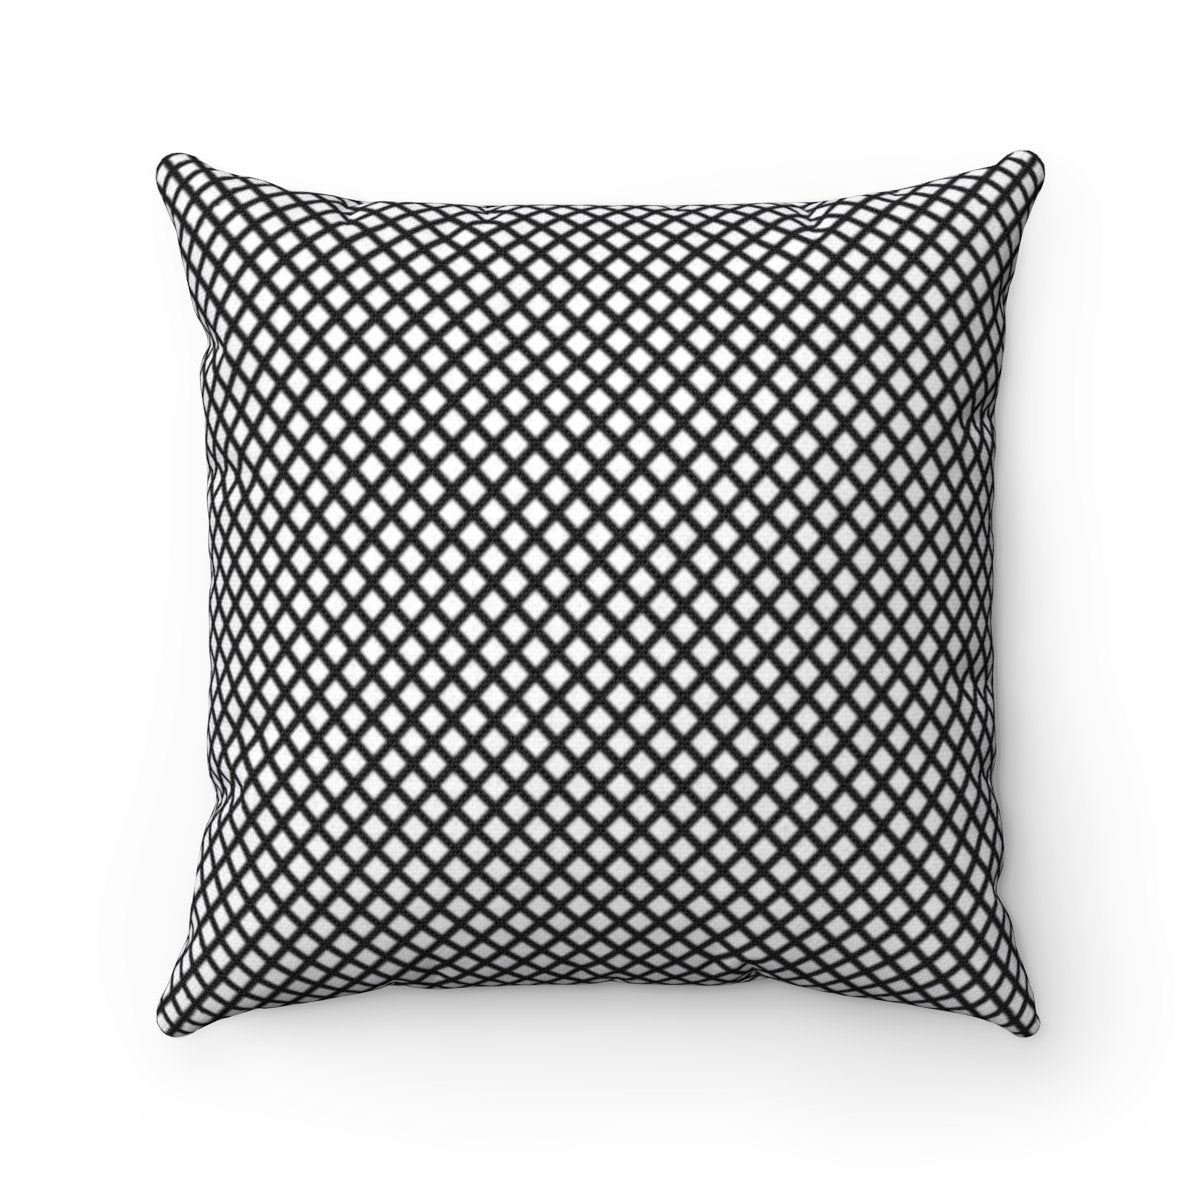 Black and White Fisheye decorative cushion cover-Home Decor - Decorative Accents - Pillows & Throws - Decorative Pillows-Maison d'Elite-Très Elite